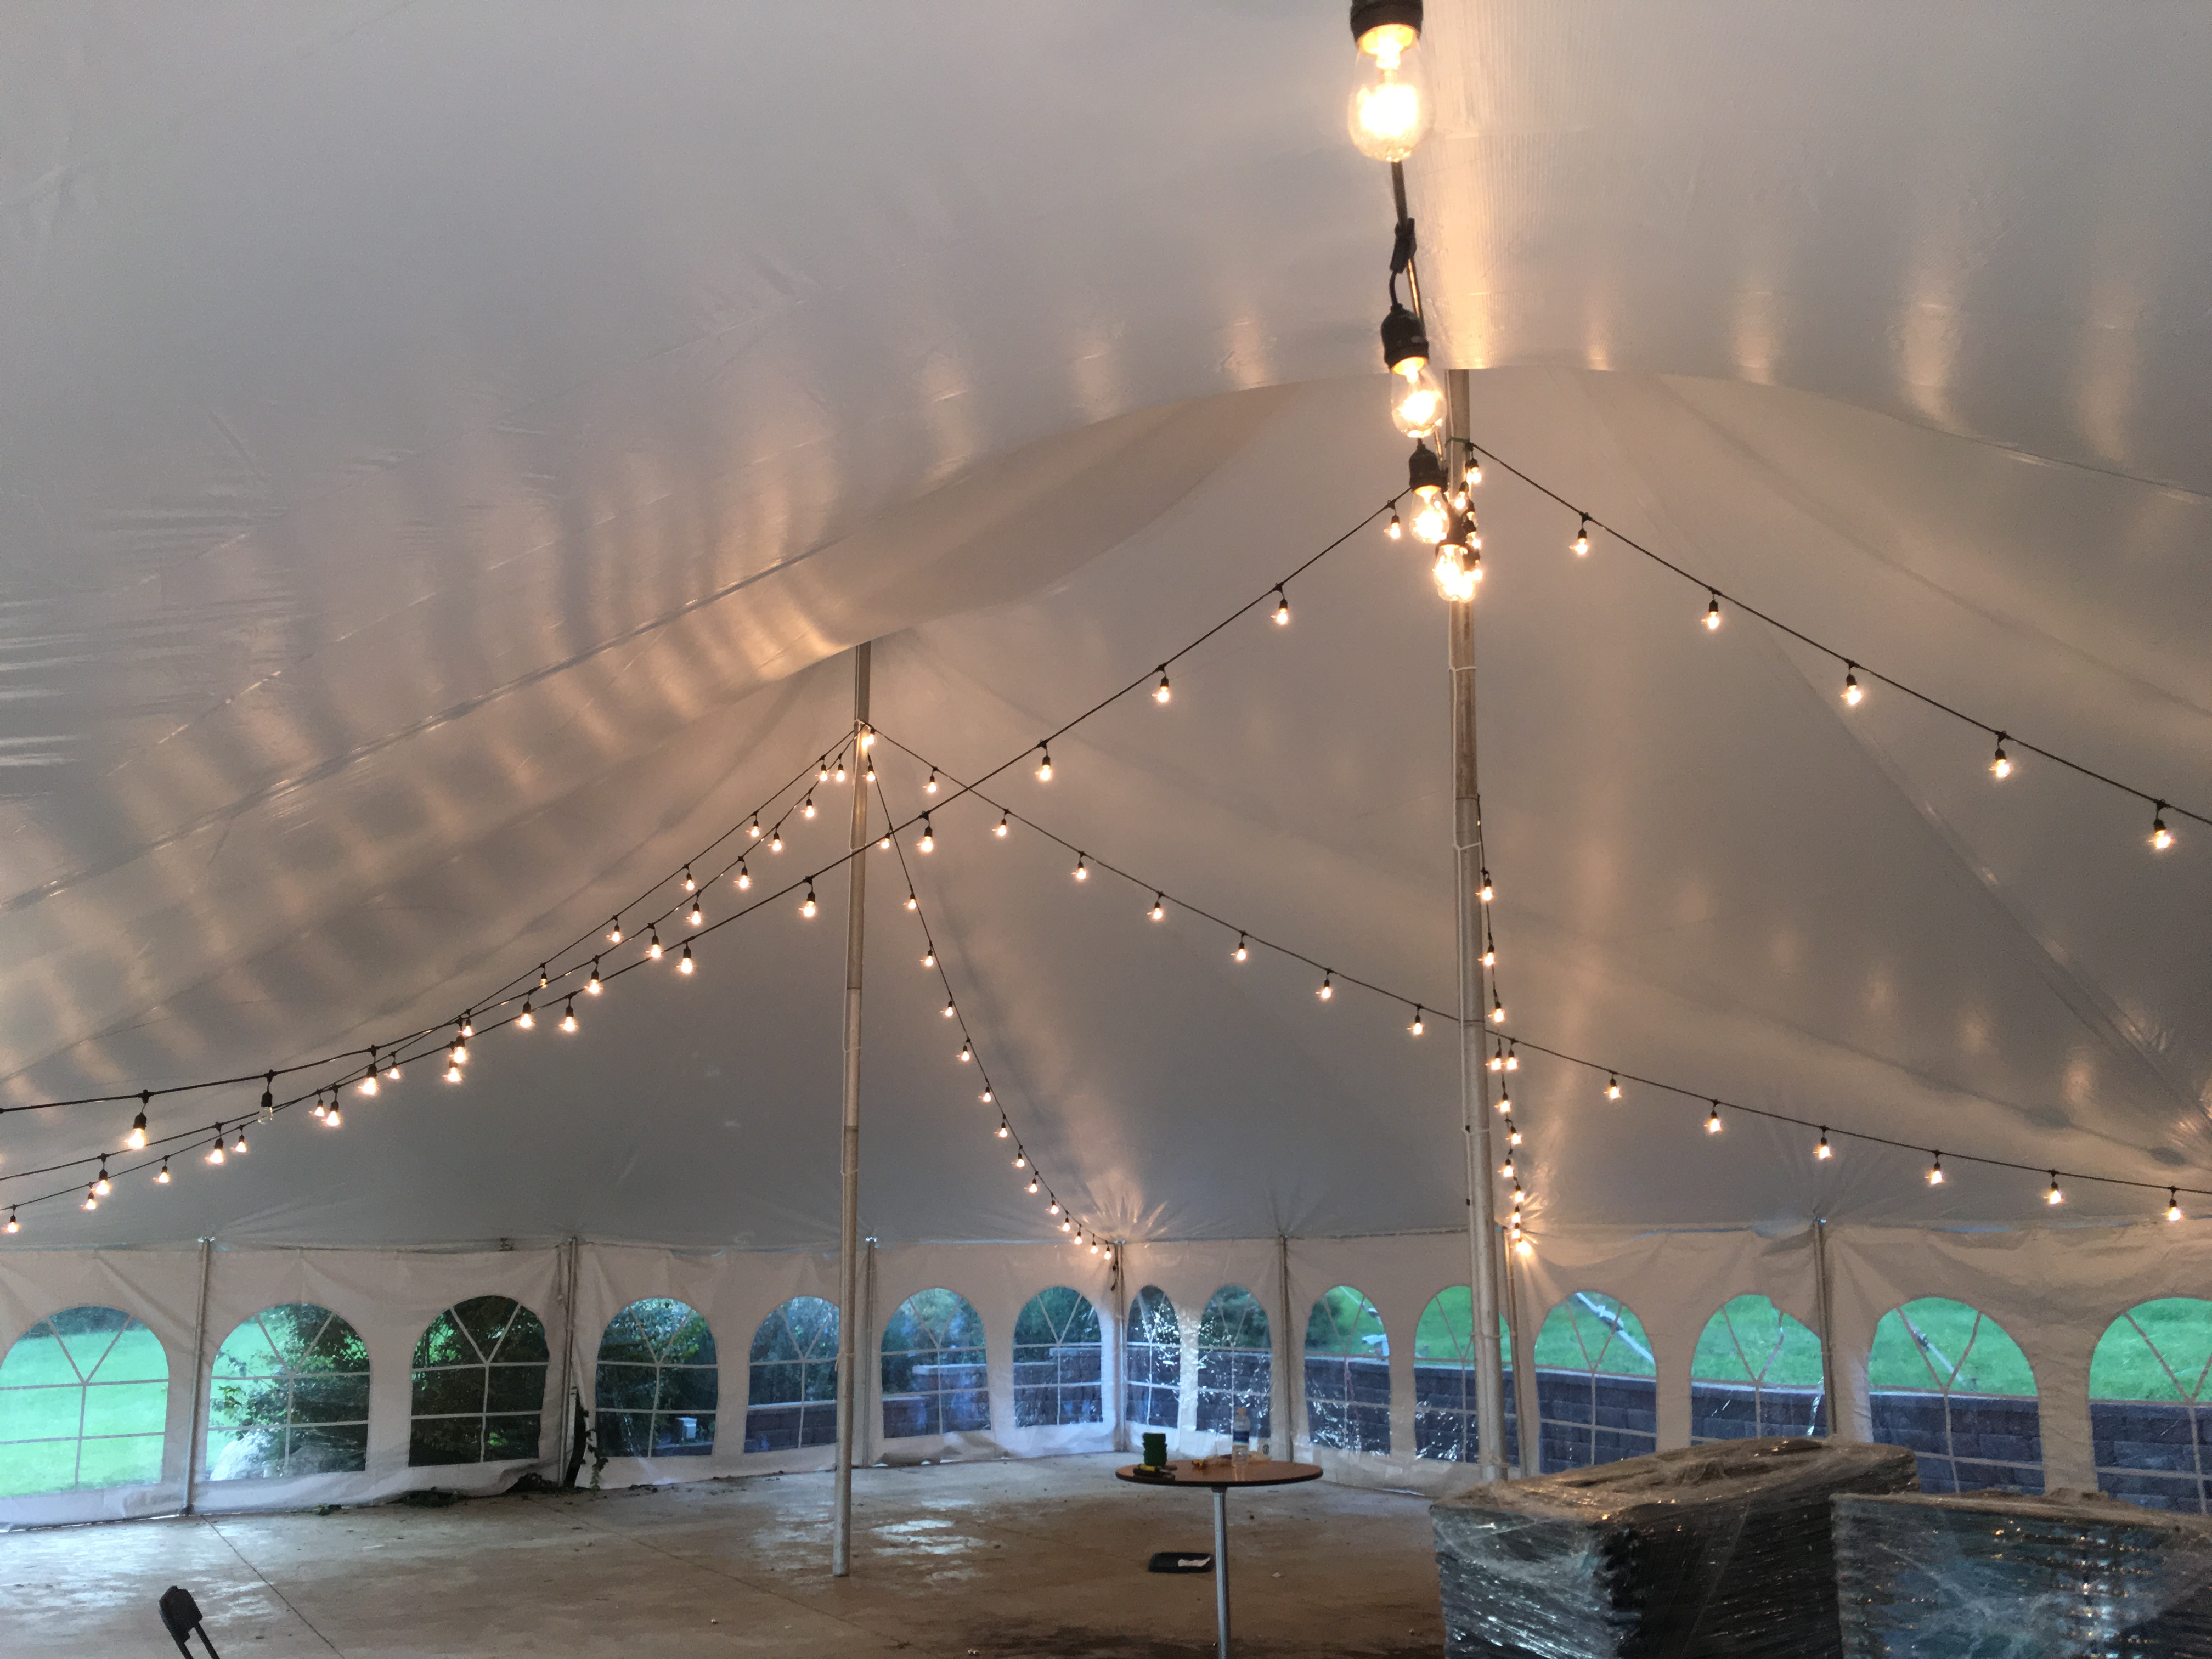 Under 40u2032 x 60u2032 white rope and pole wedding tent at Harvest Preserve with Edison cafe string lights & Under 40u0027 x 60u0027 white rope and pole wedding tent at Harvest ...